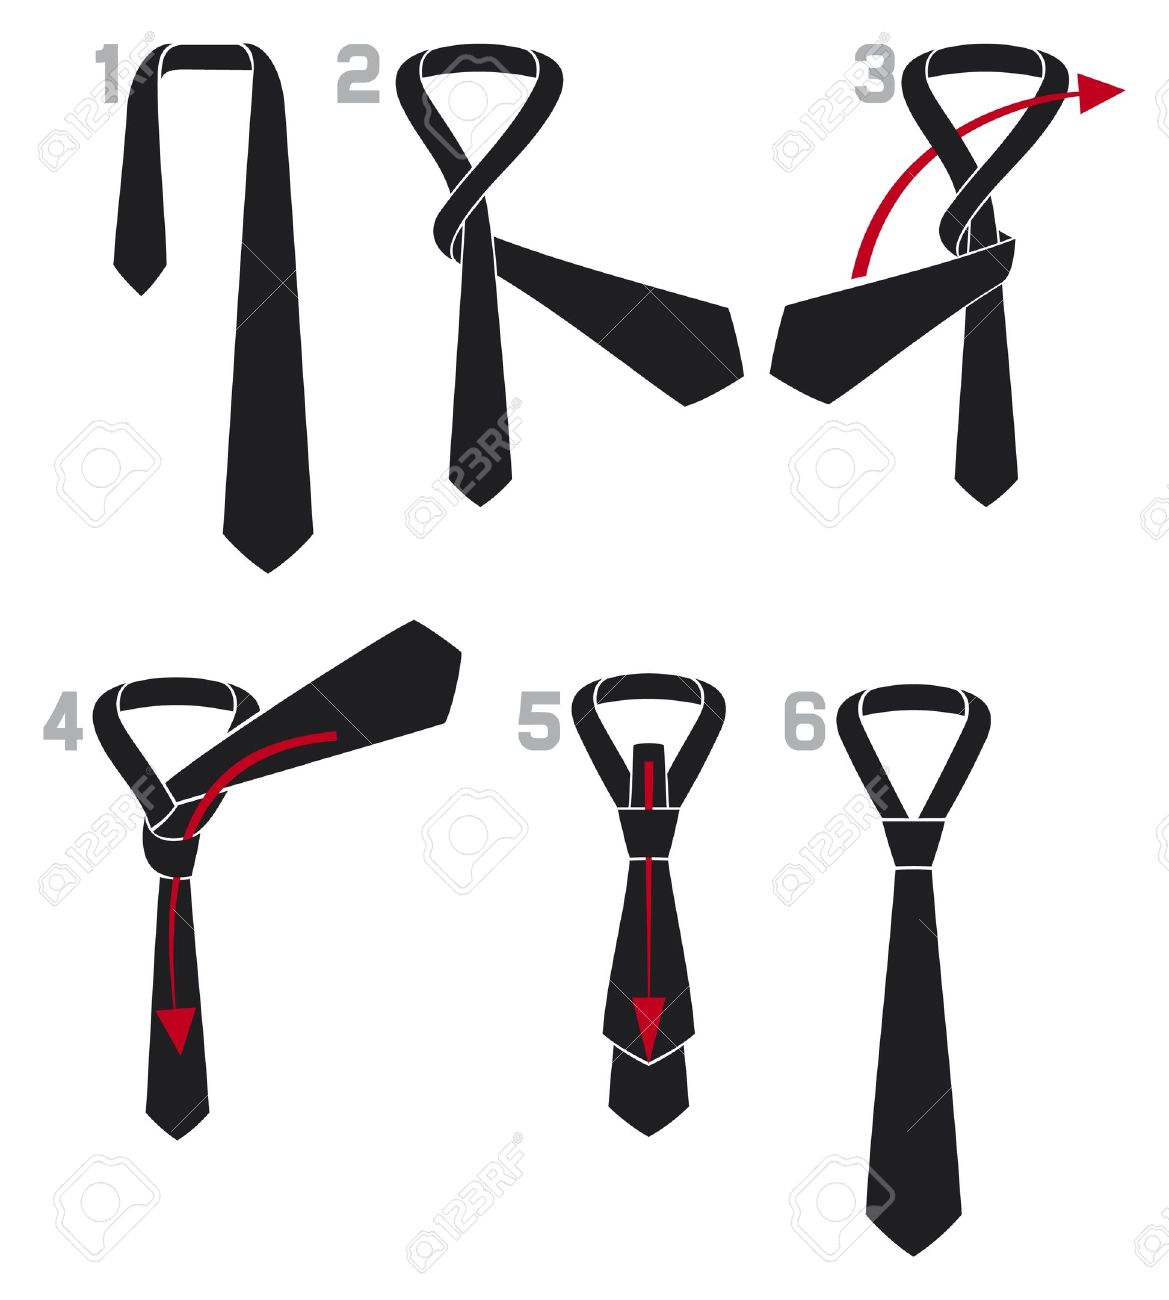 Vector Tie And Knot Instructions The Four In Hand Knot, Instructions How To  Tie A